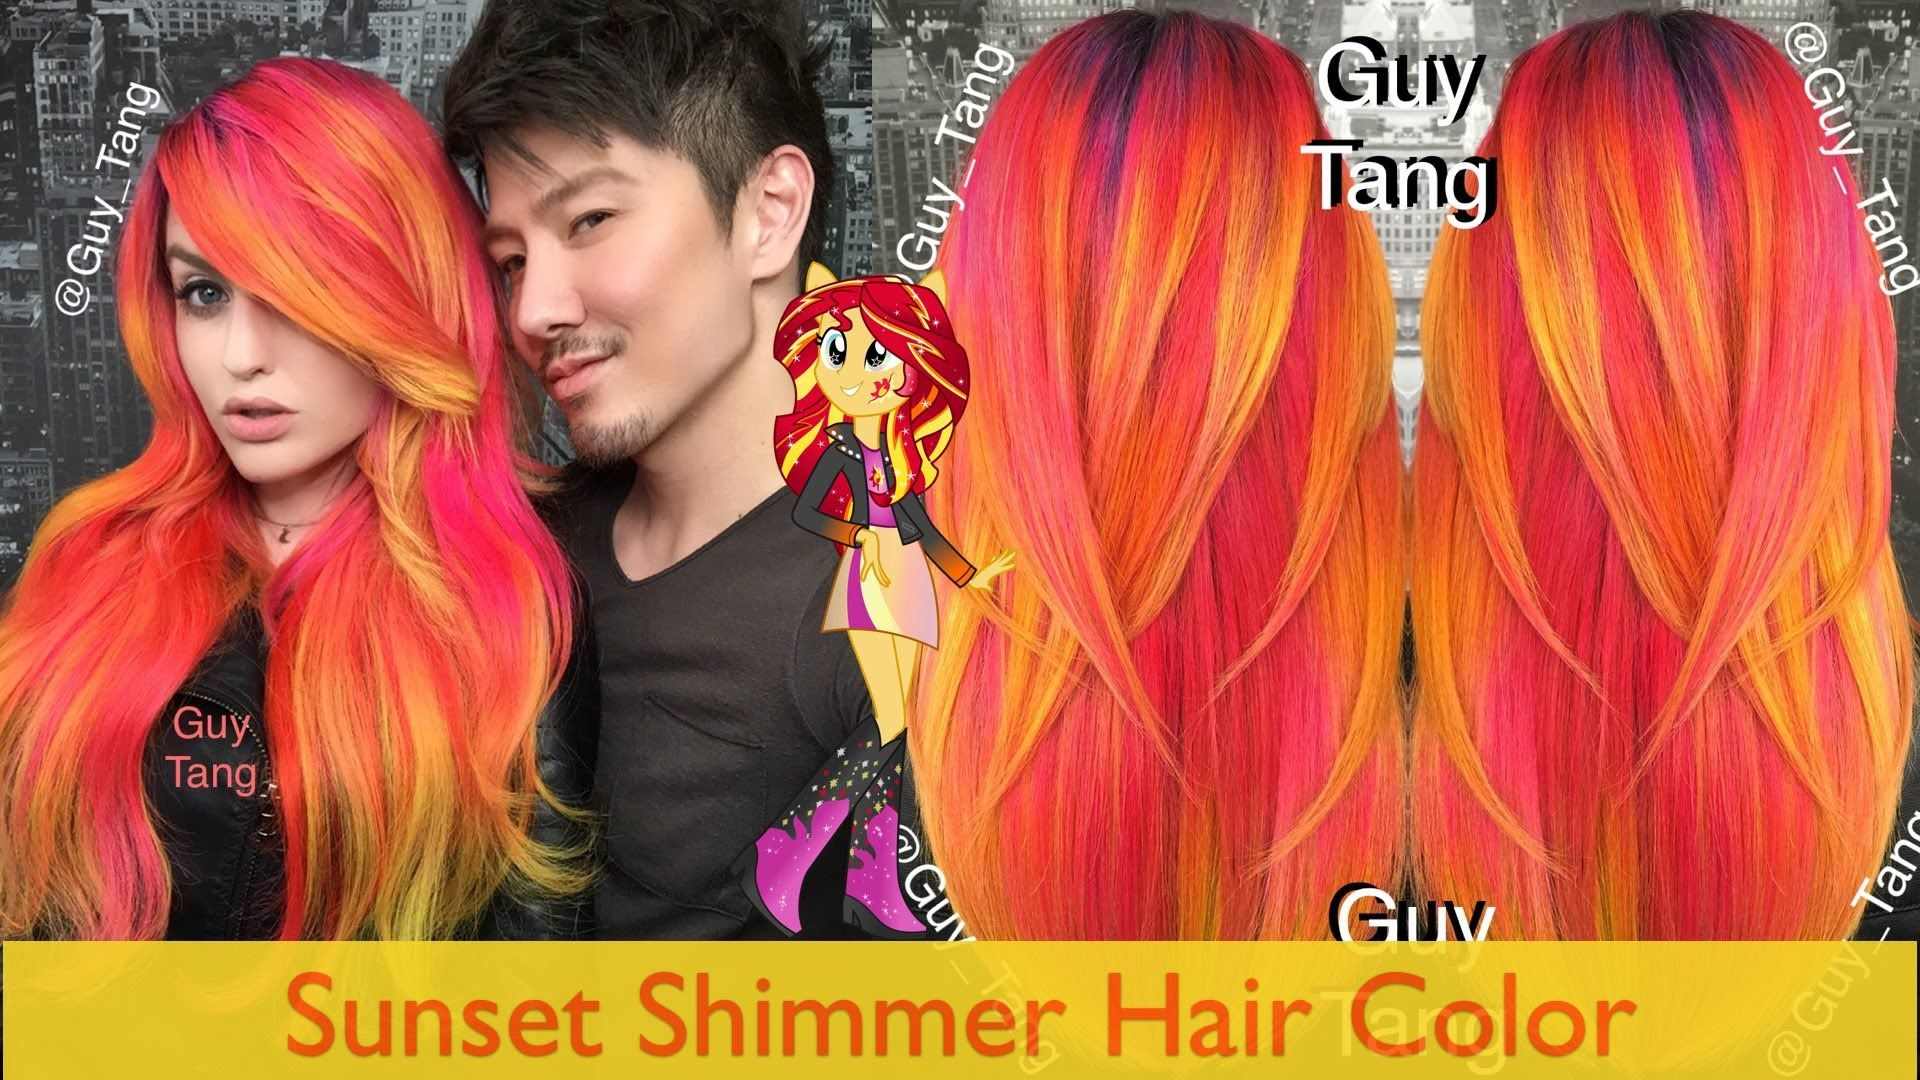 Sunset Shimmer Hair Color Video Up With Olaplex Balayage Ombre